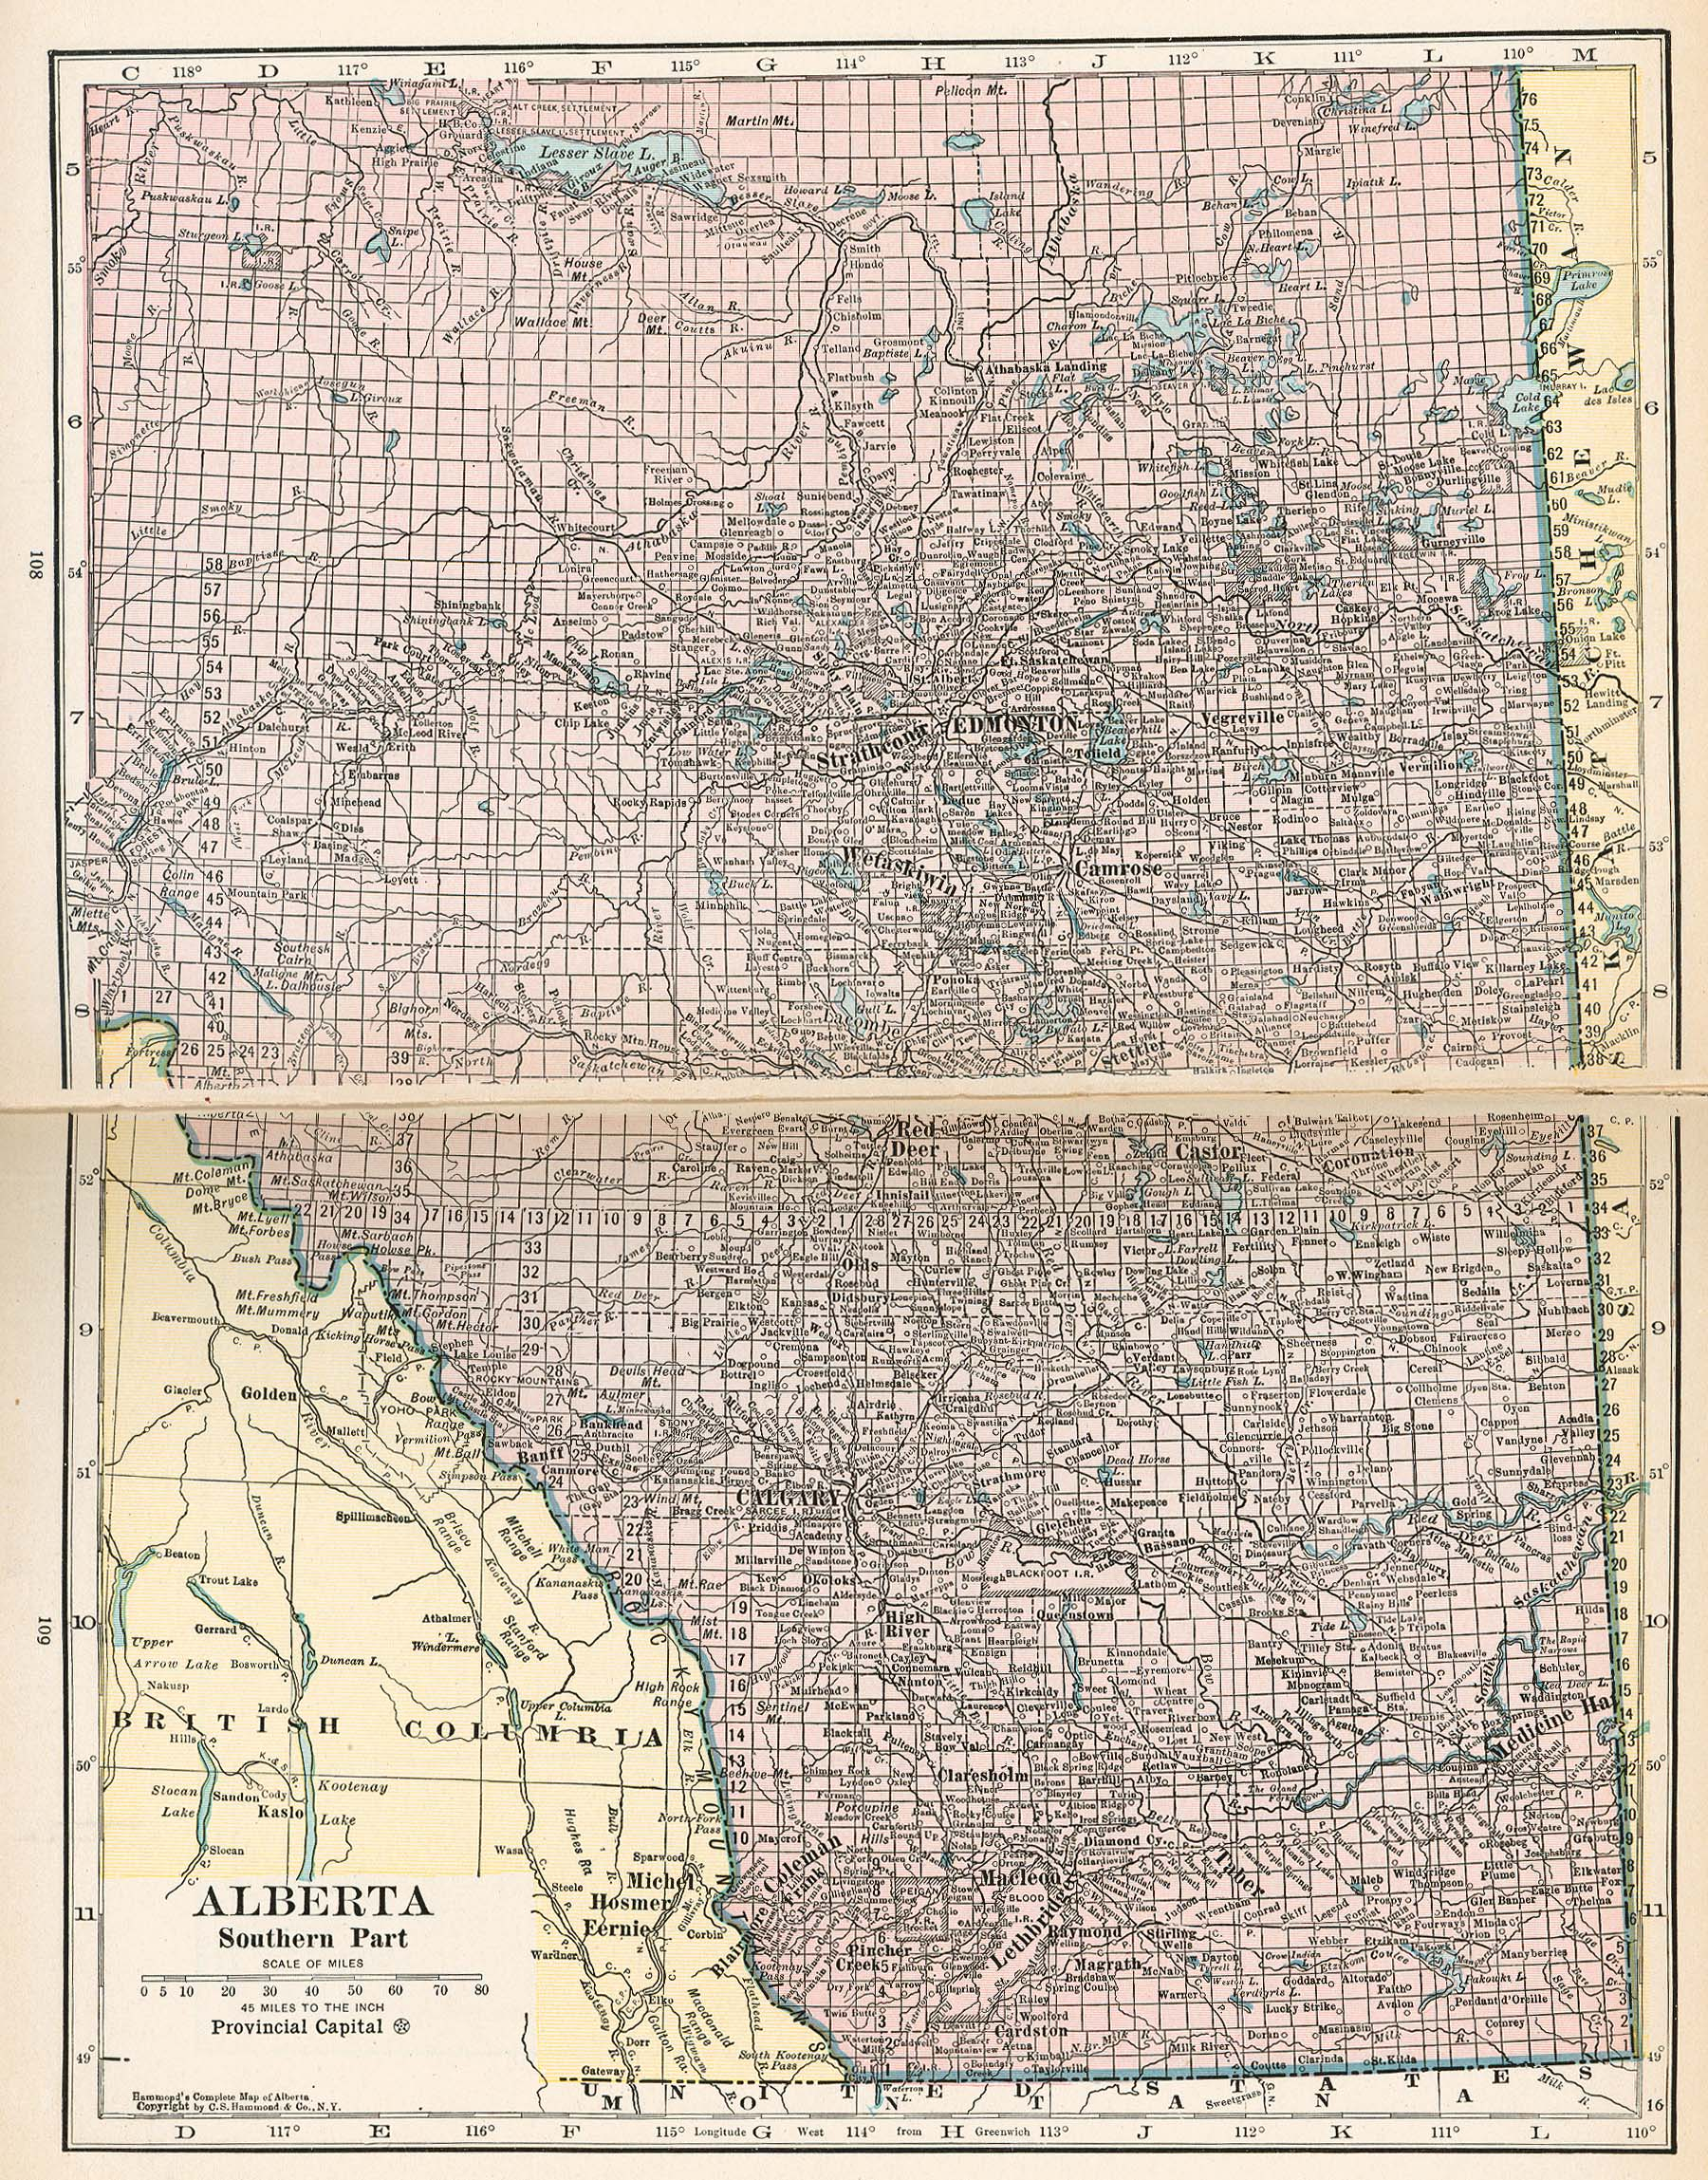 Americas Historical Maps - Perry-Castañeda Map Collection - UT ...